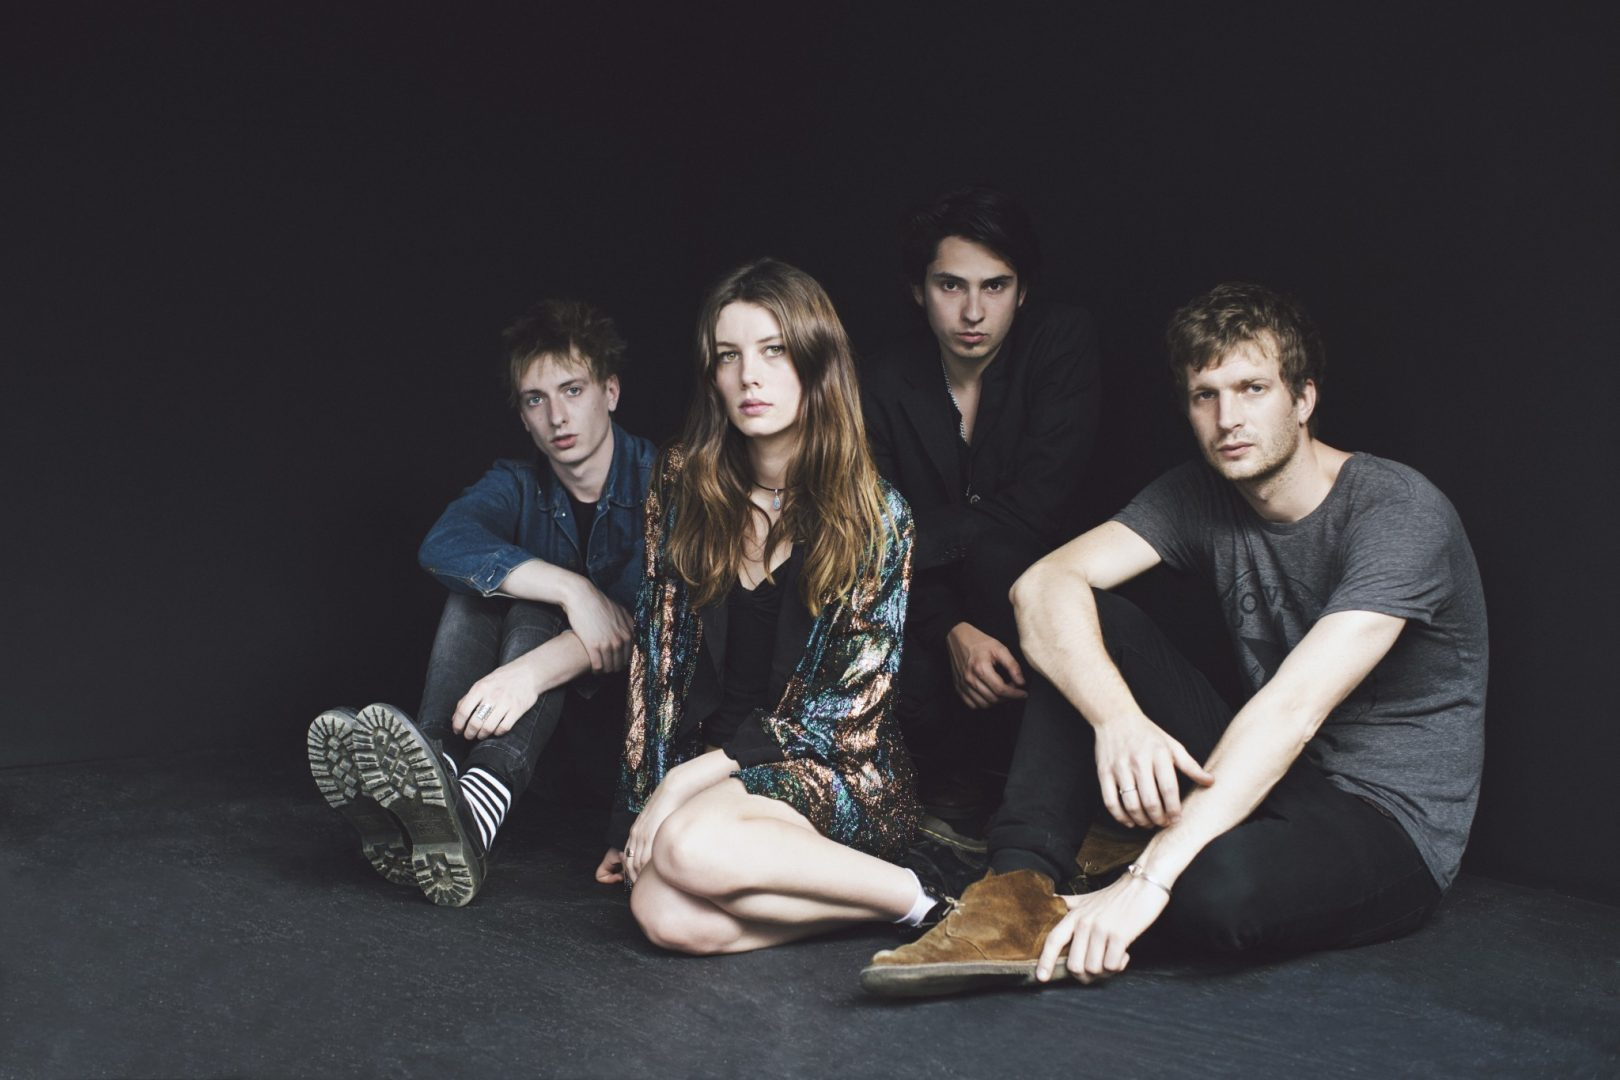 Wolf Alice found 1D an unlikely inspiration